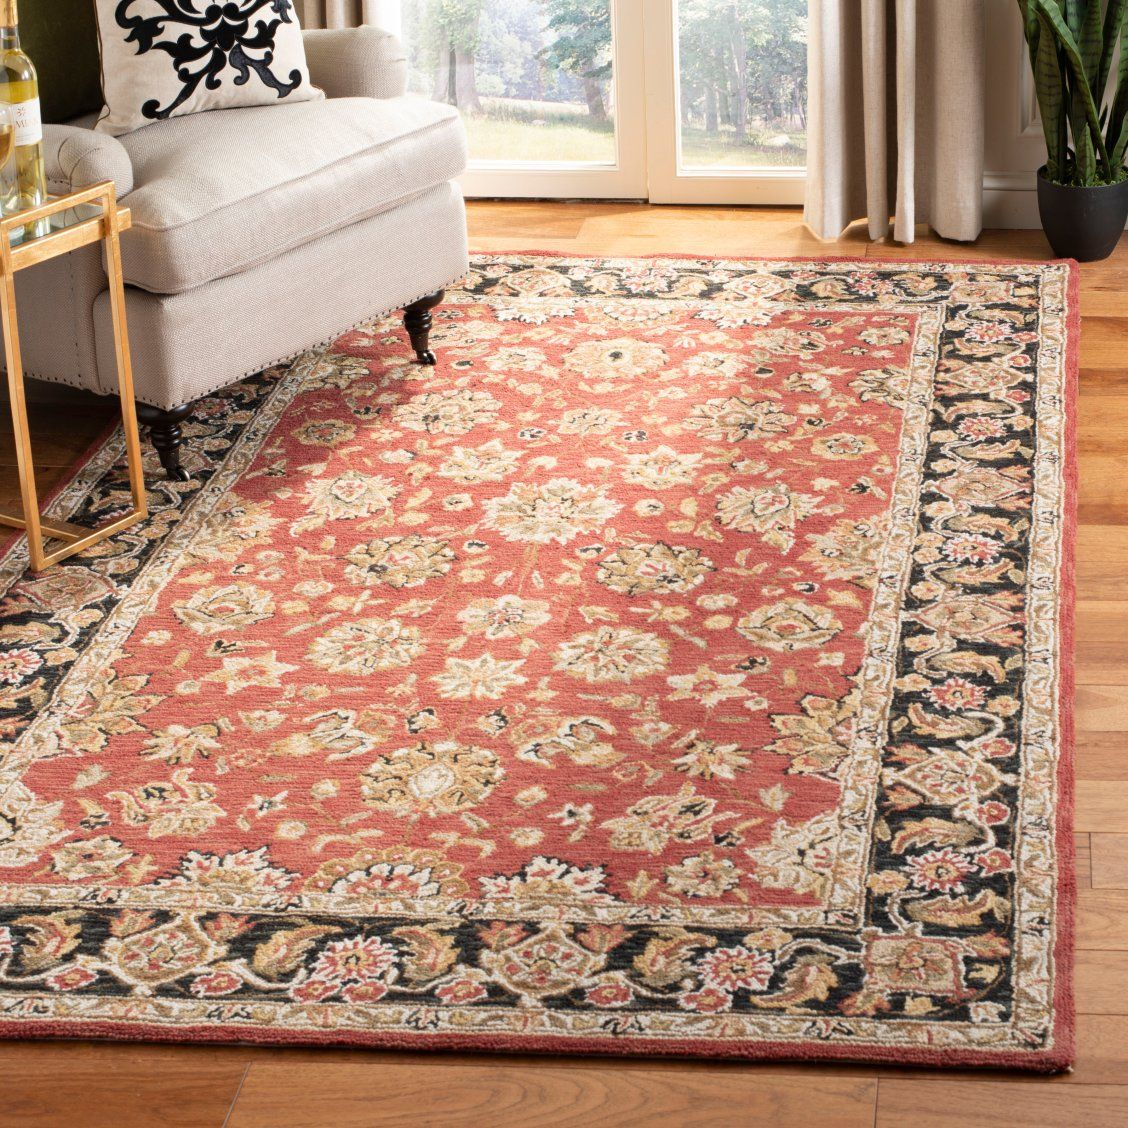 The Chelsea Collection Of Americana Styled Area Rugs Is A